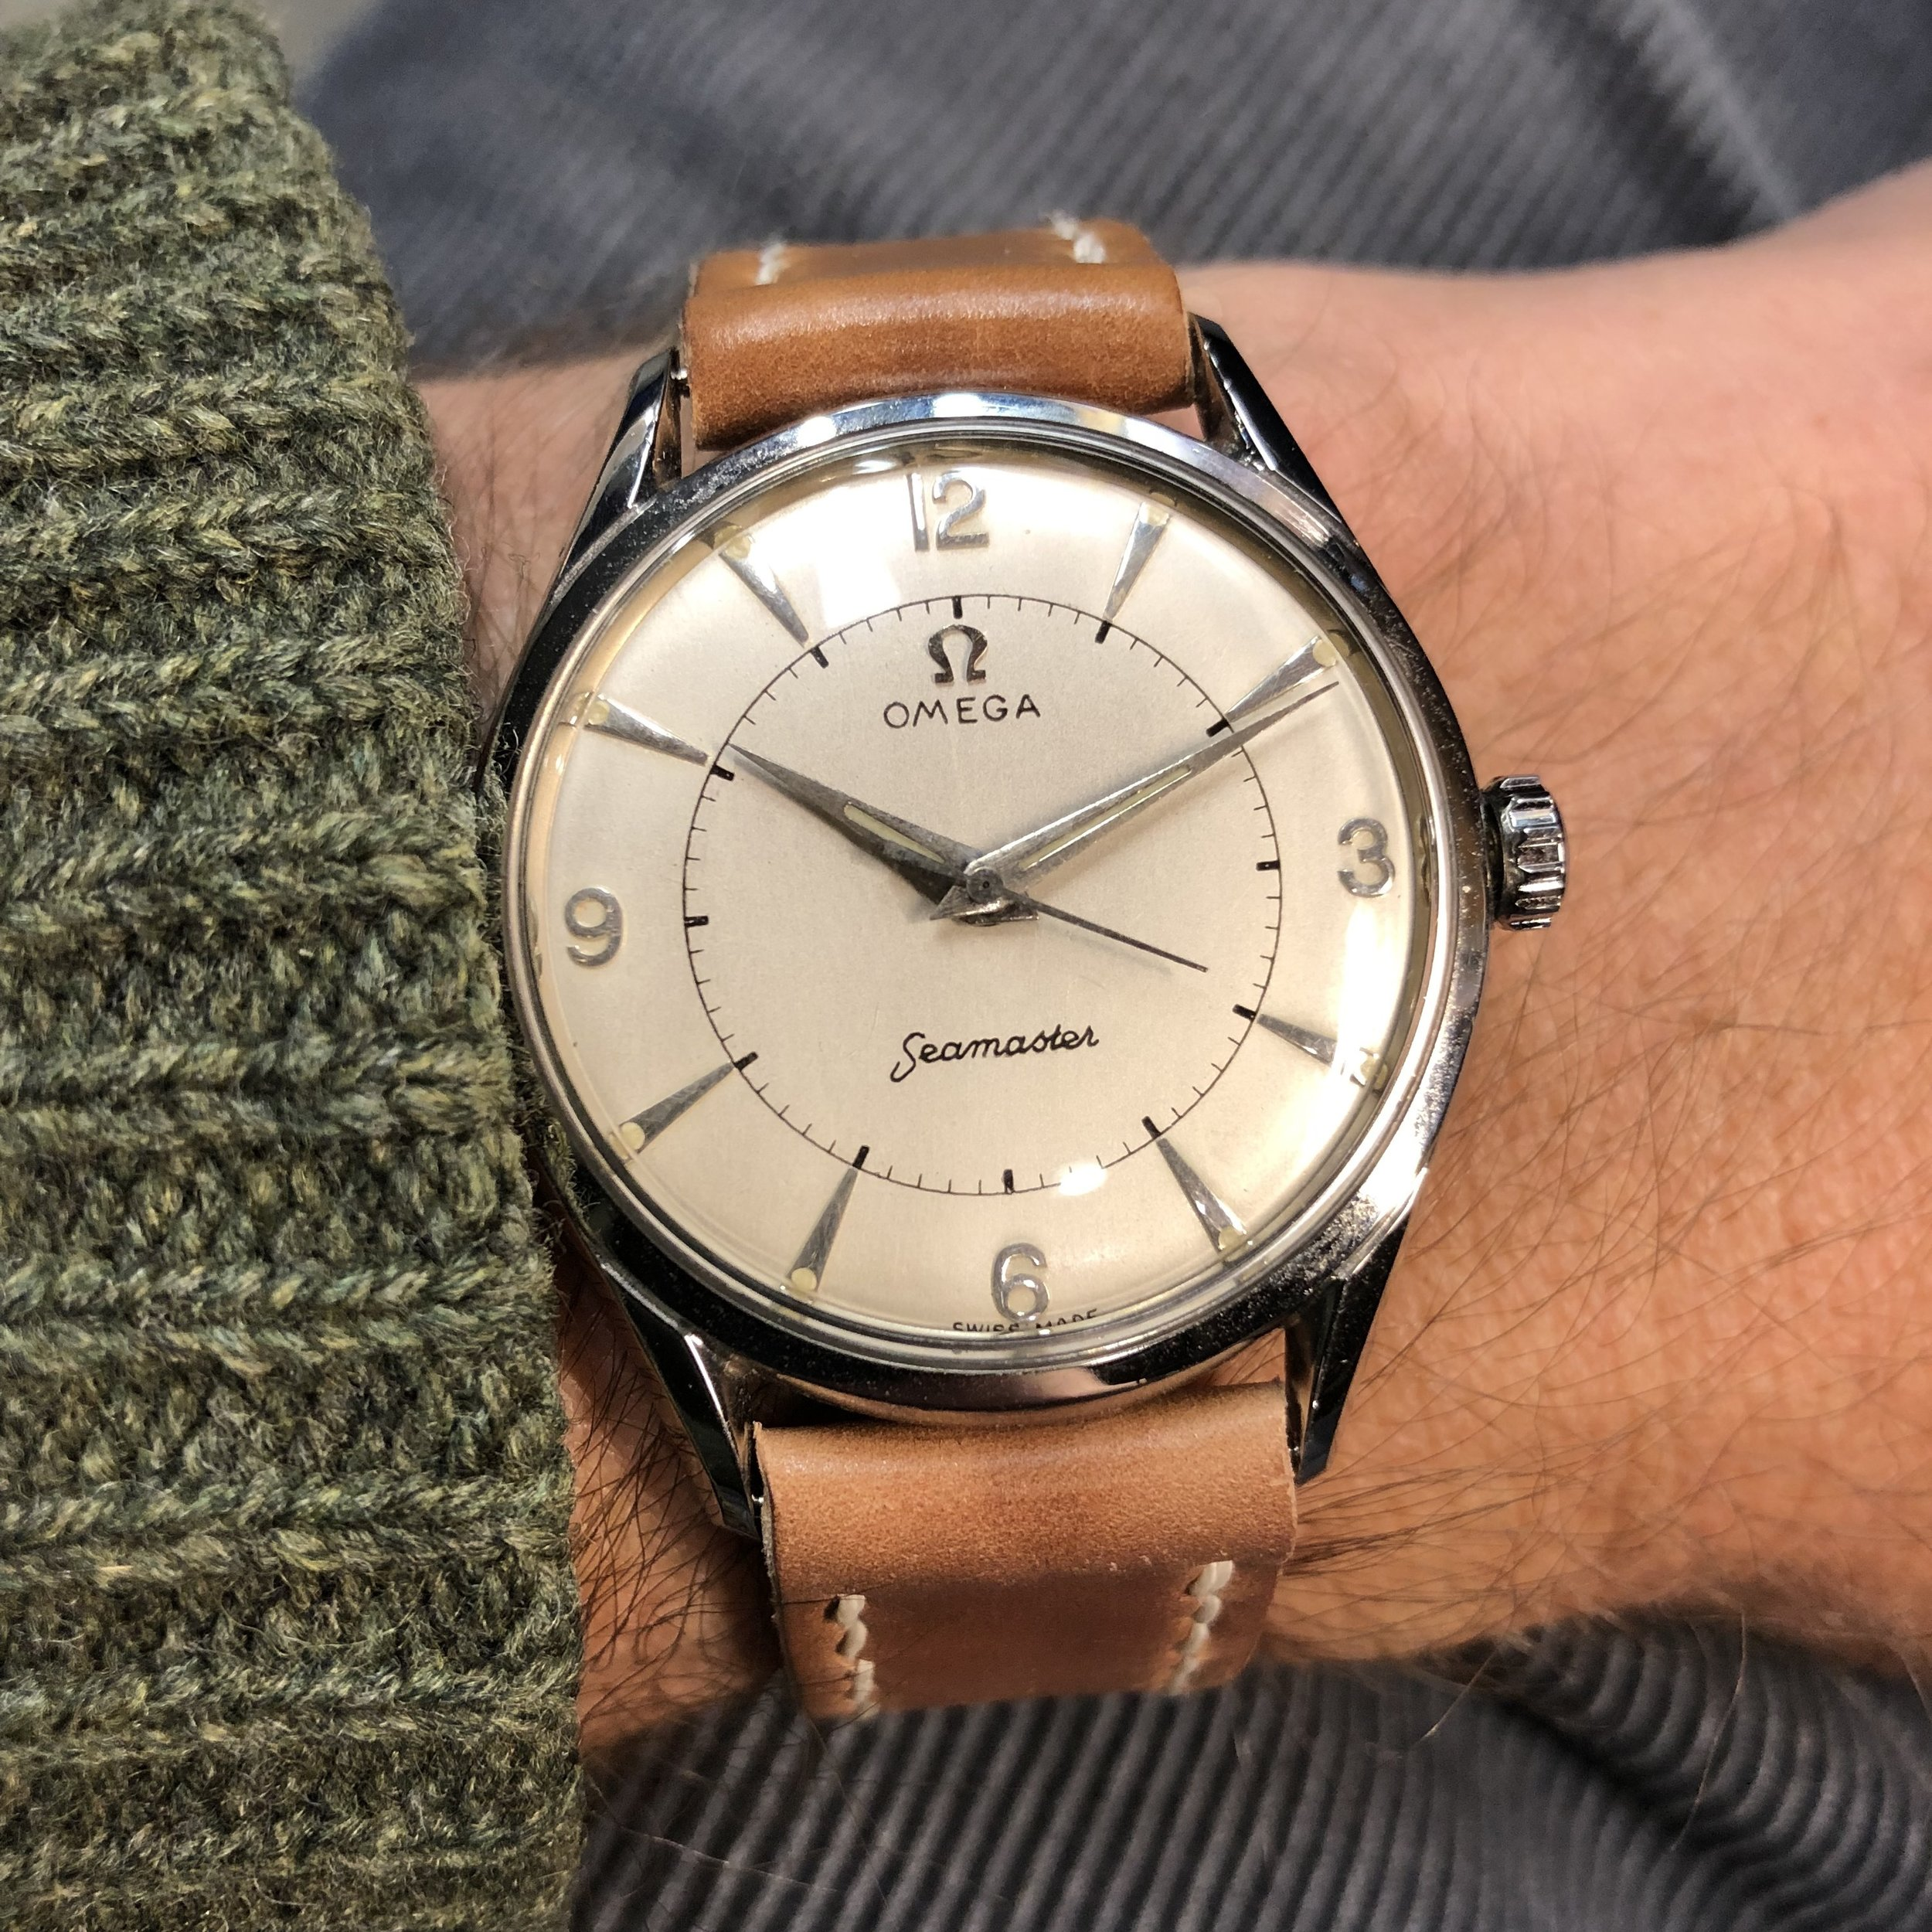 The way the Omega will look for the next few decades.